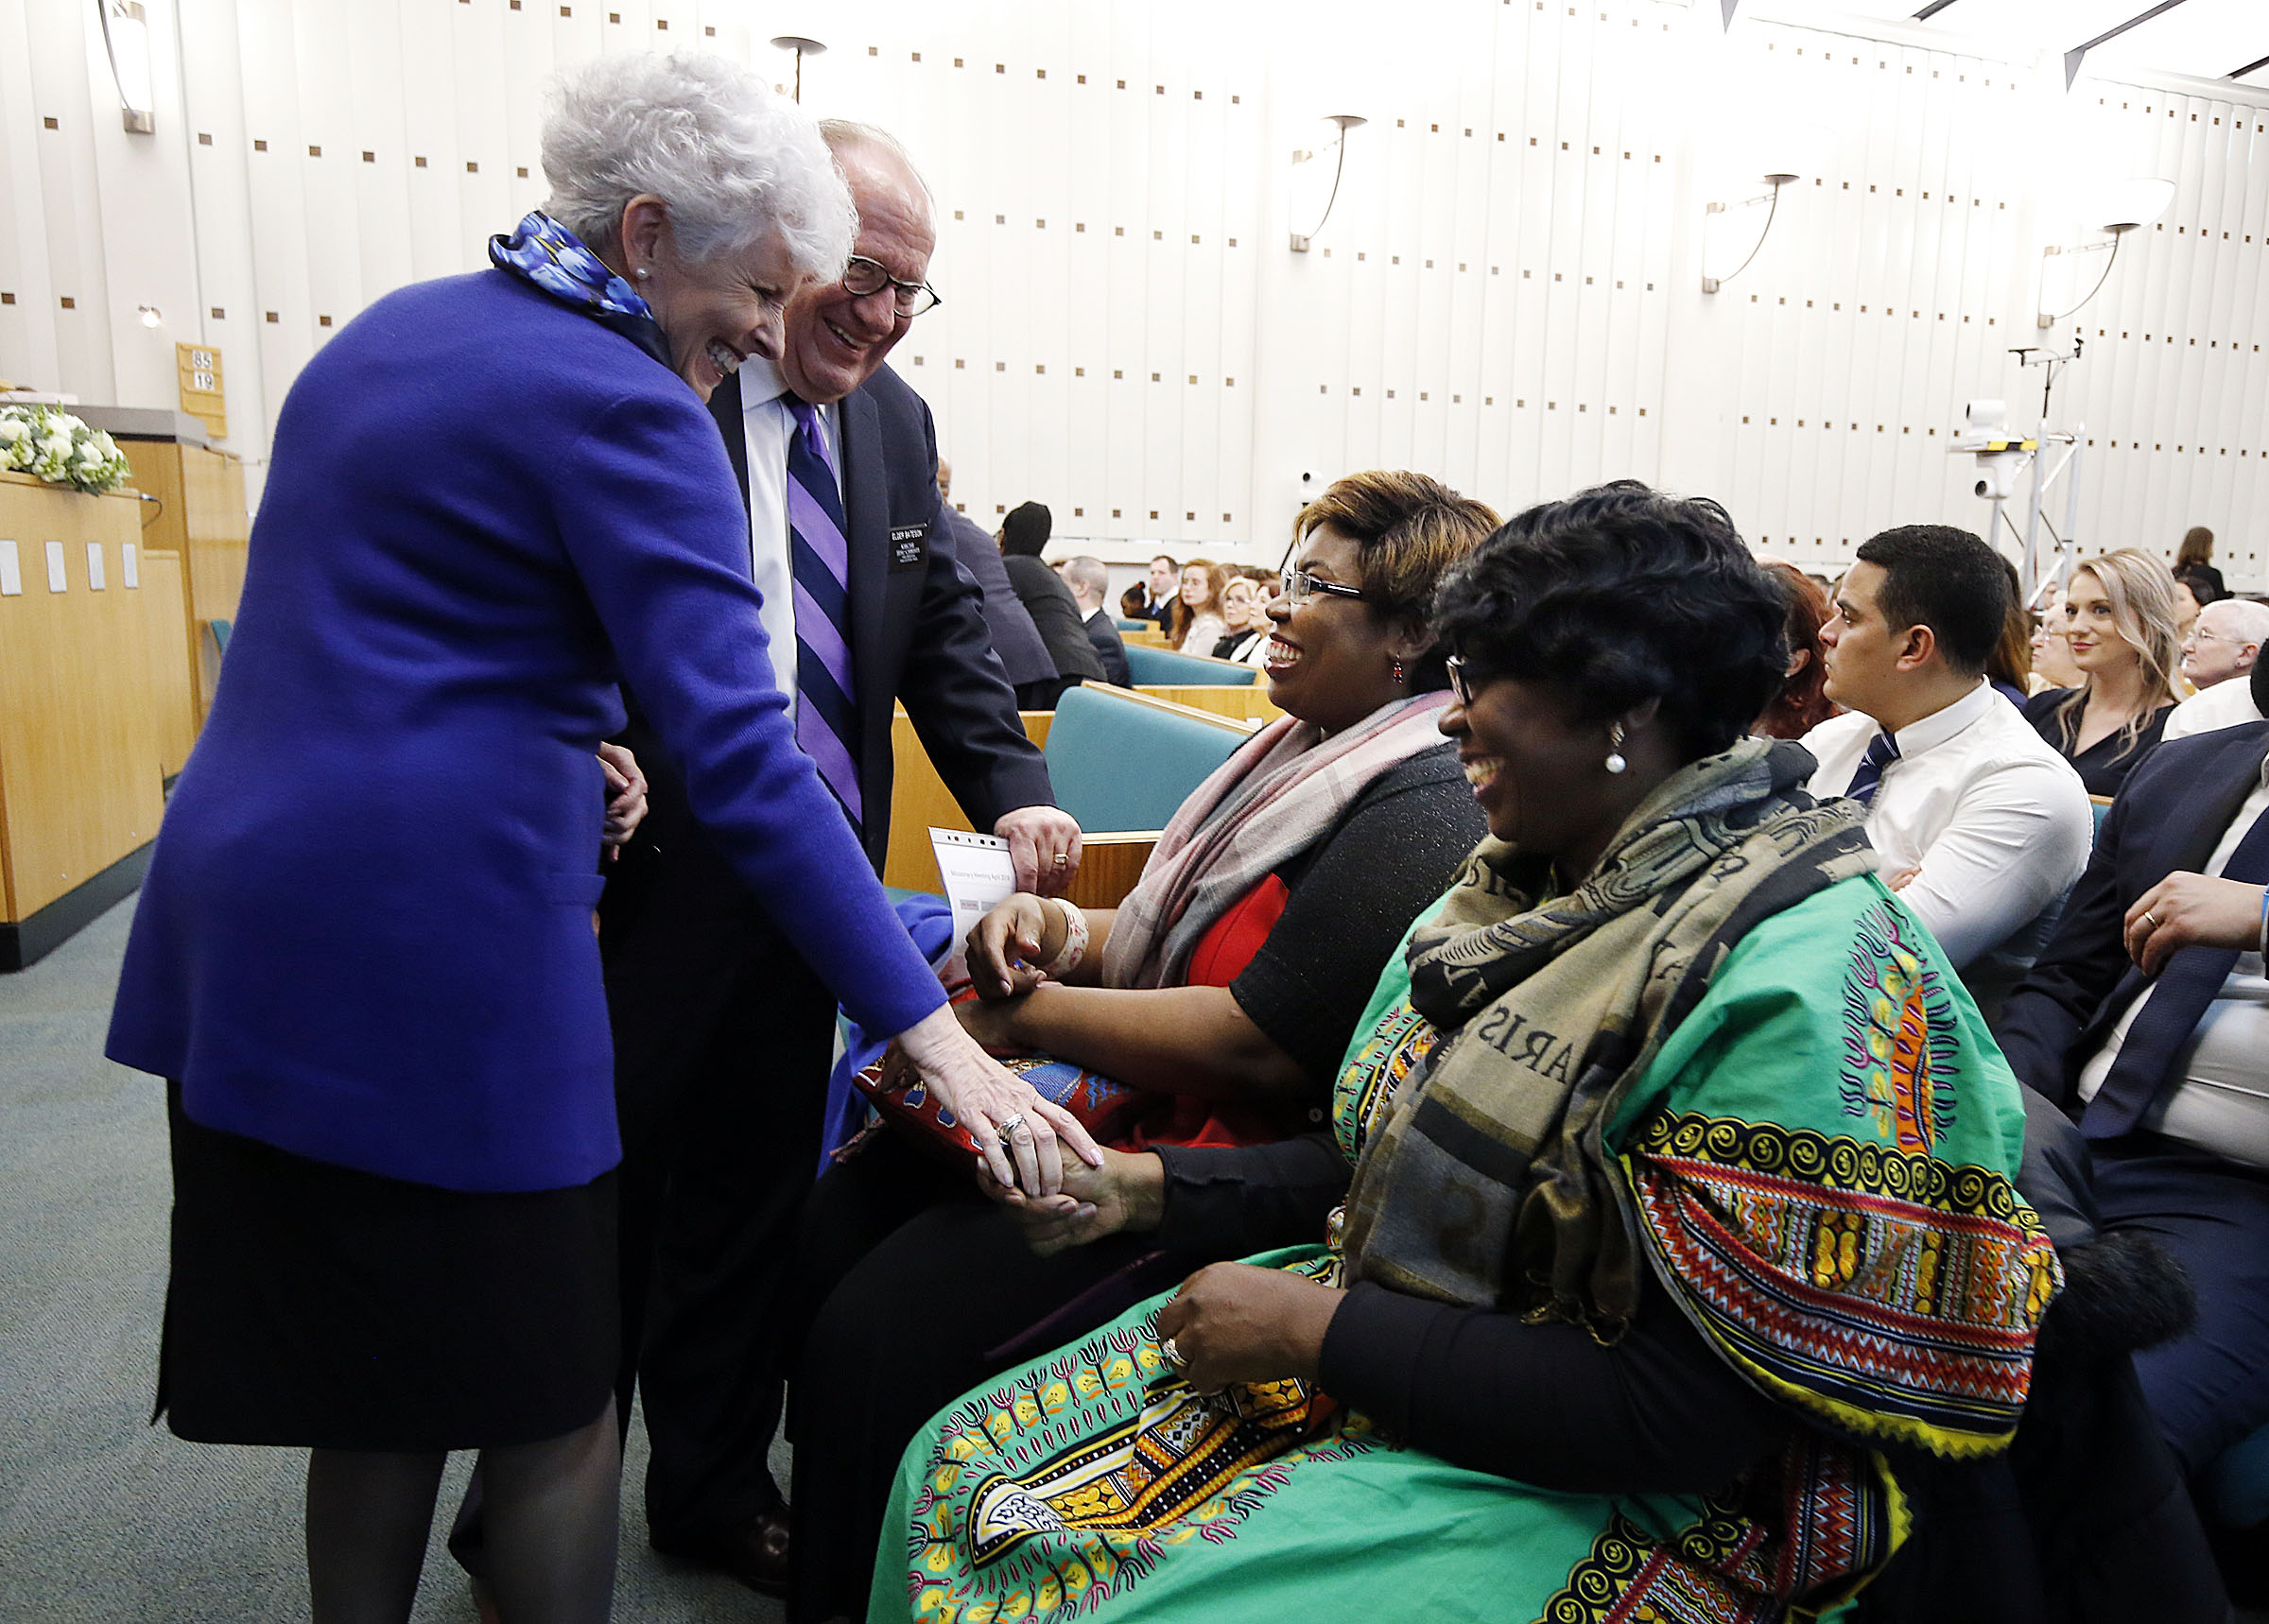 Sister Mona Bateson and Elder Jeff Bateson, left, greet Tina Cooke and Sonia Cooke before a meeting at the Hyde Park Chapel in London on Thursday, April 12, 2018.